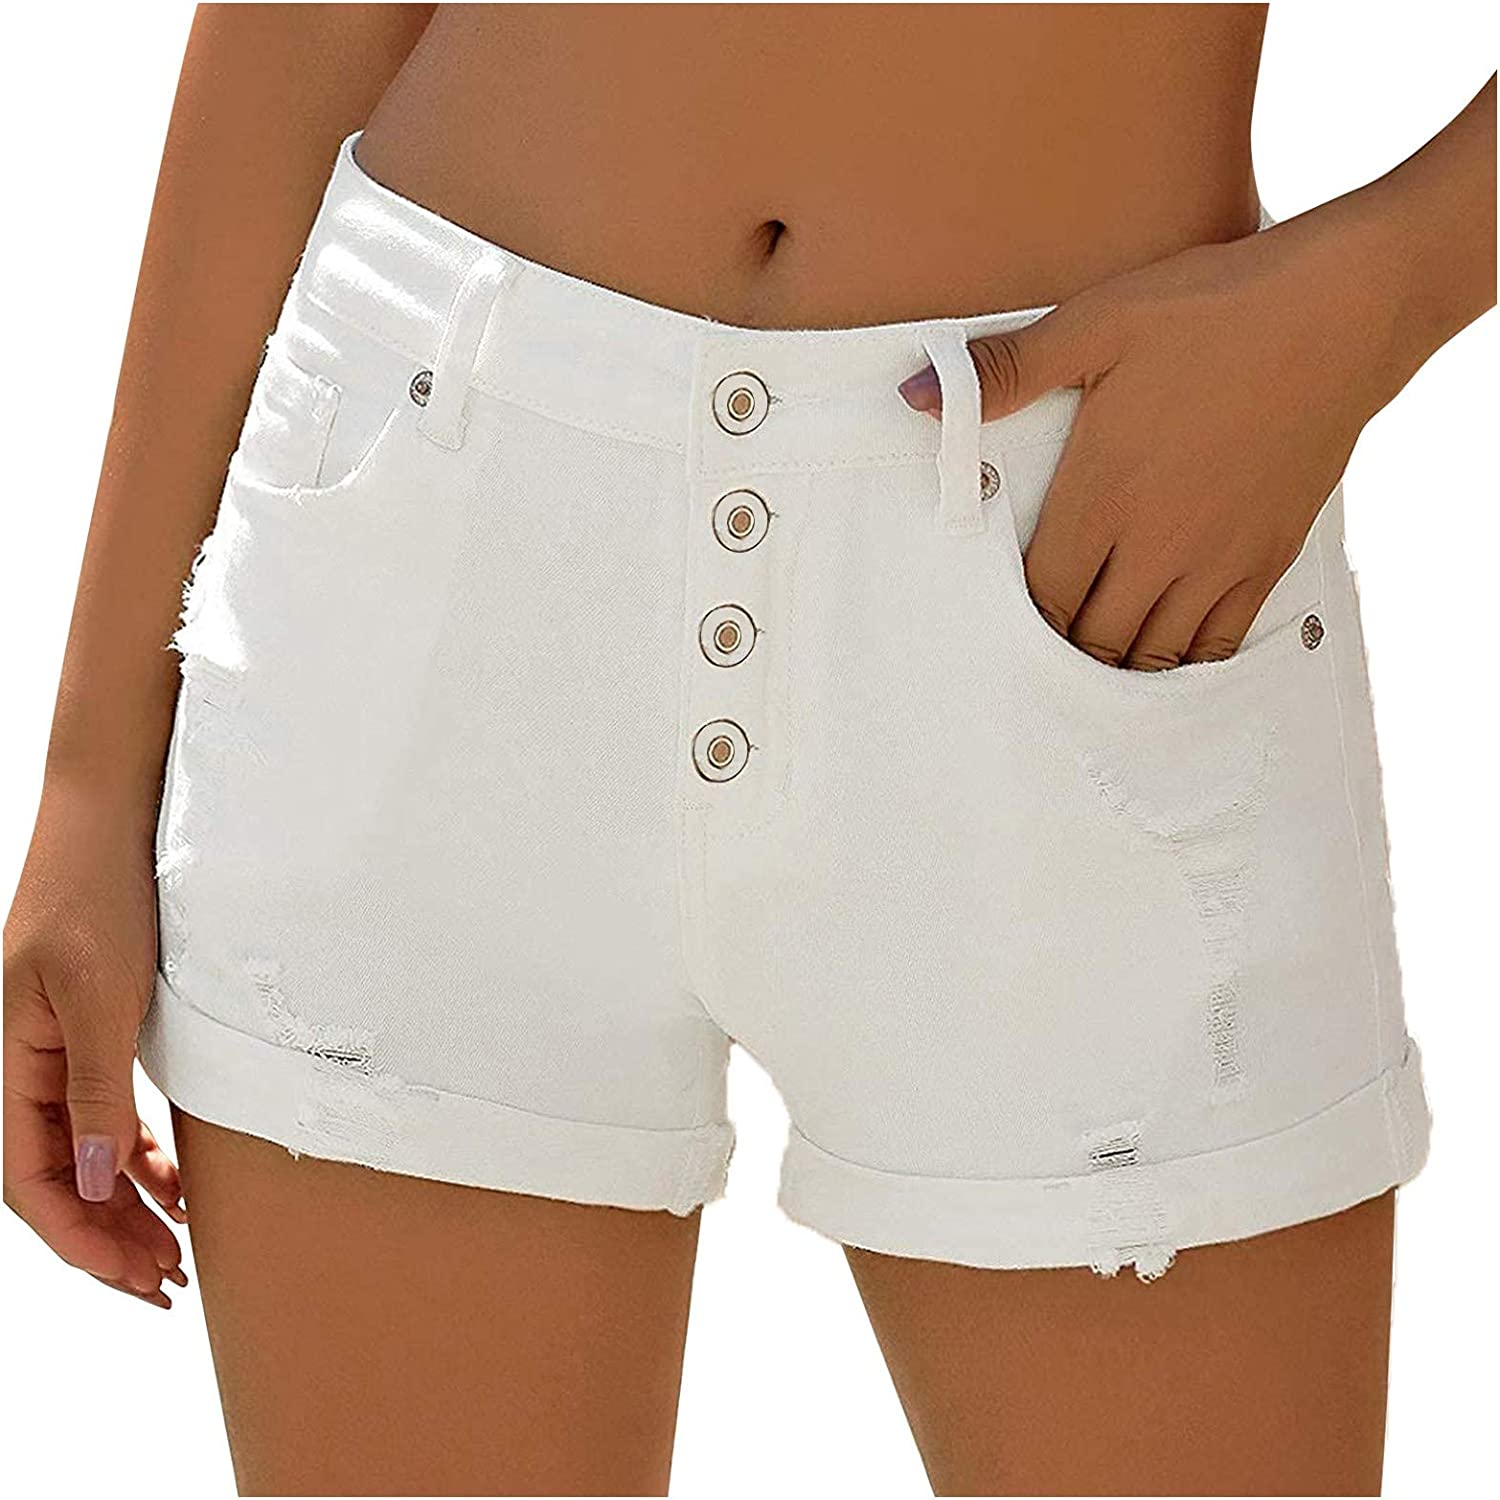 Denim Shorts for Women Distressed Ripped Shorts Jean Stretchy Frayed Raw Hem Button Hot Short Jeans with Pockets